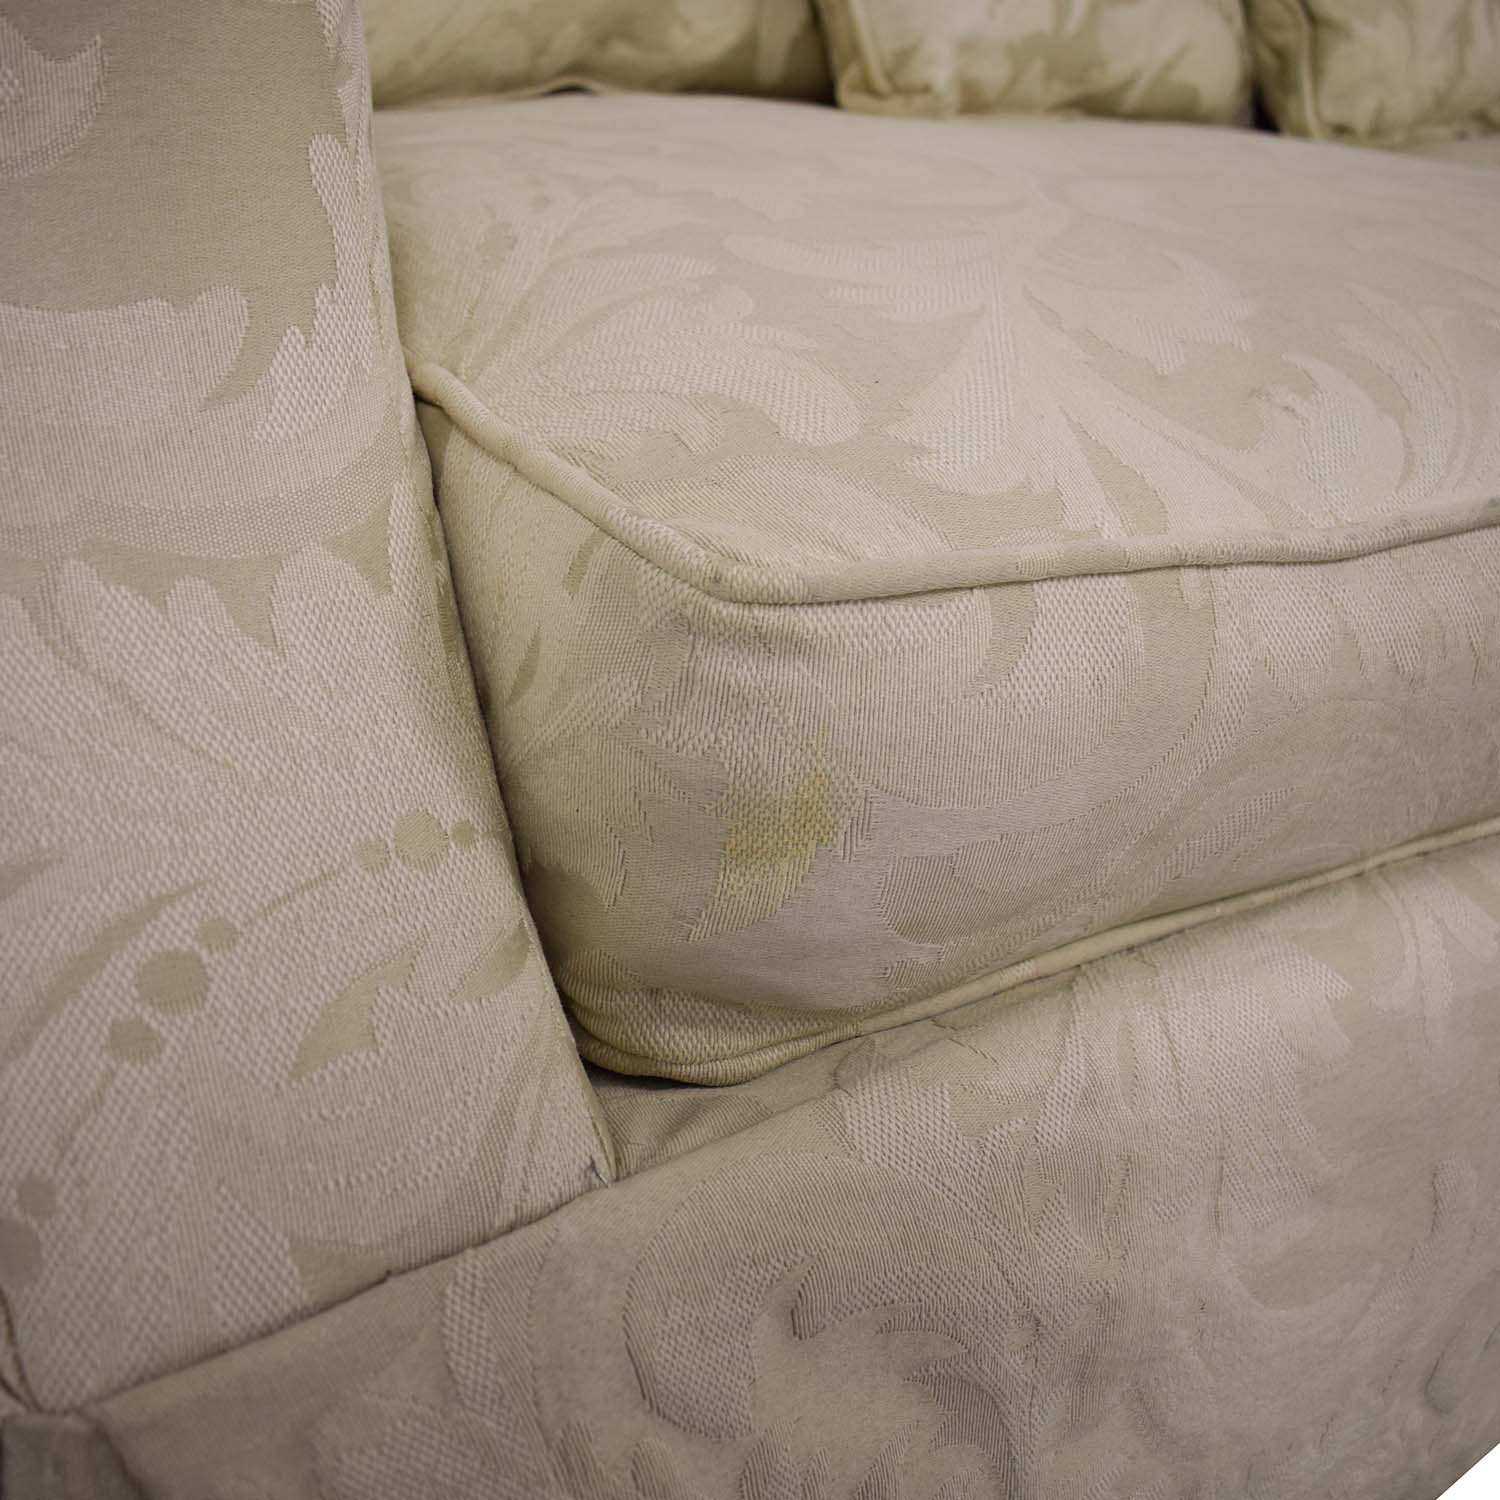 Rowe Furniture Rowe Furniture Roll Arm Sofa off white